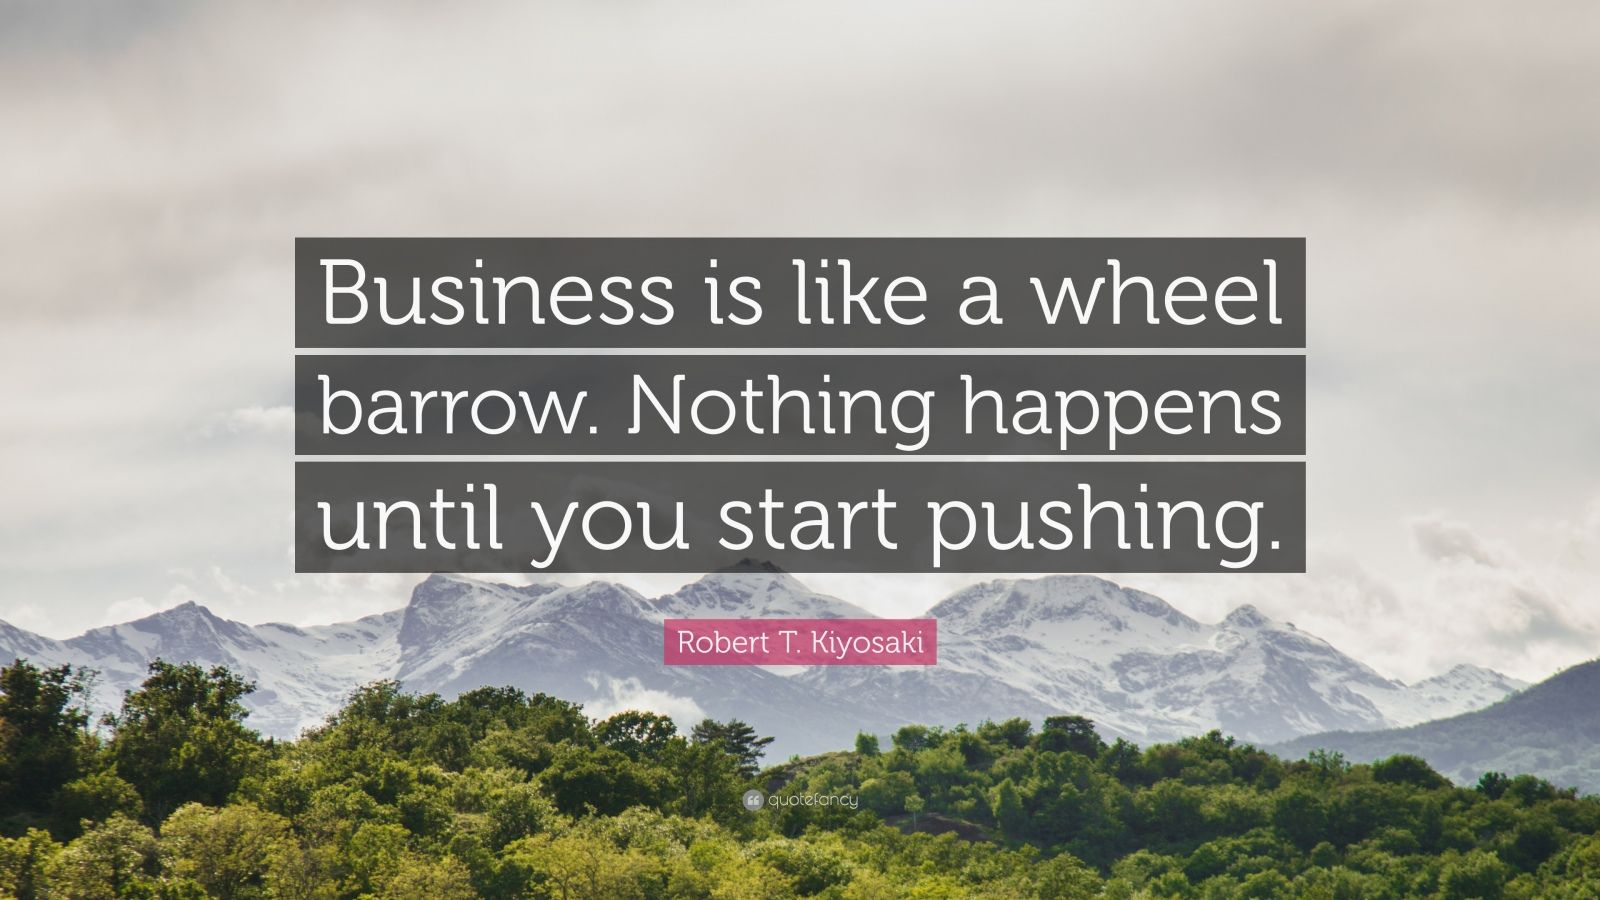 """Robert T. Kiyosaki Quote: """"Business is like a wheel barrow. Nothing happens until you start pushing."""""""